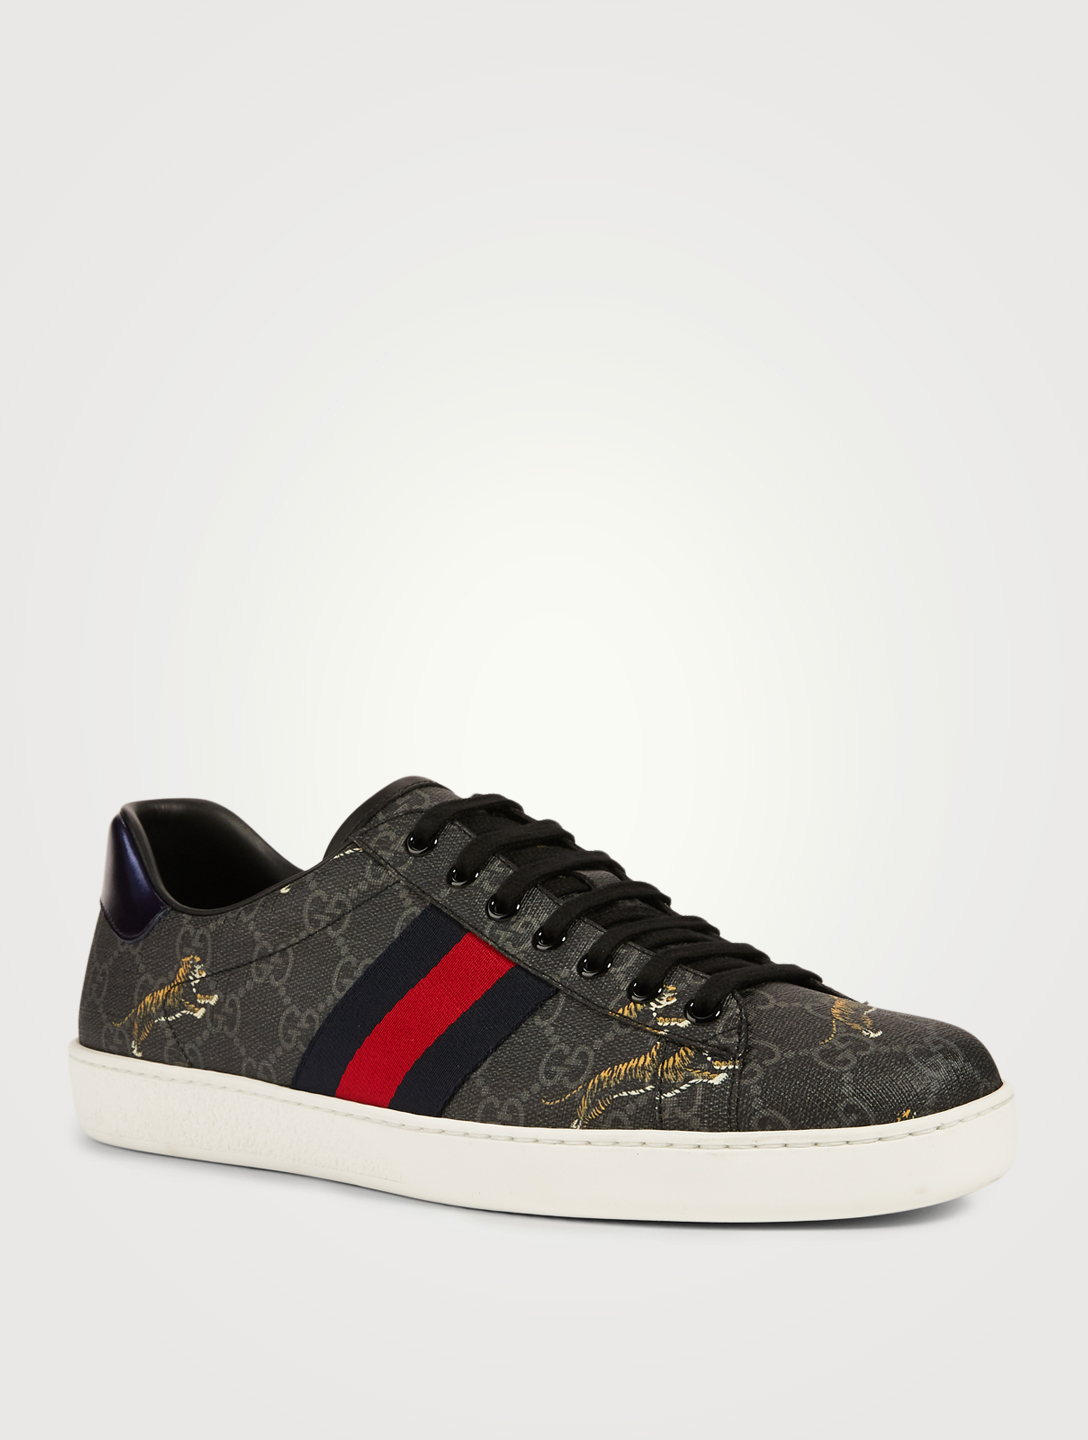 1dfe59b44a1 GUCCI Ace GG Supreme Sneakers With Tigers   Holt Renfrew